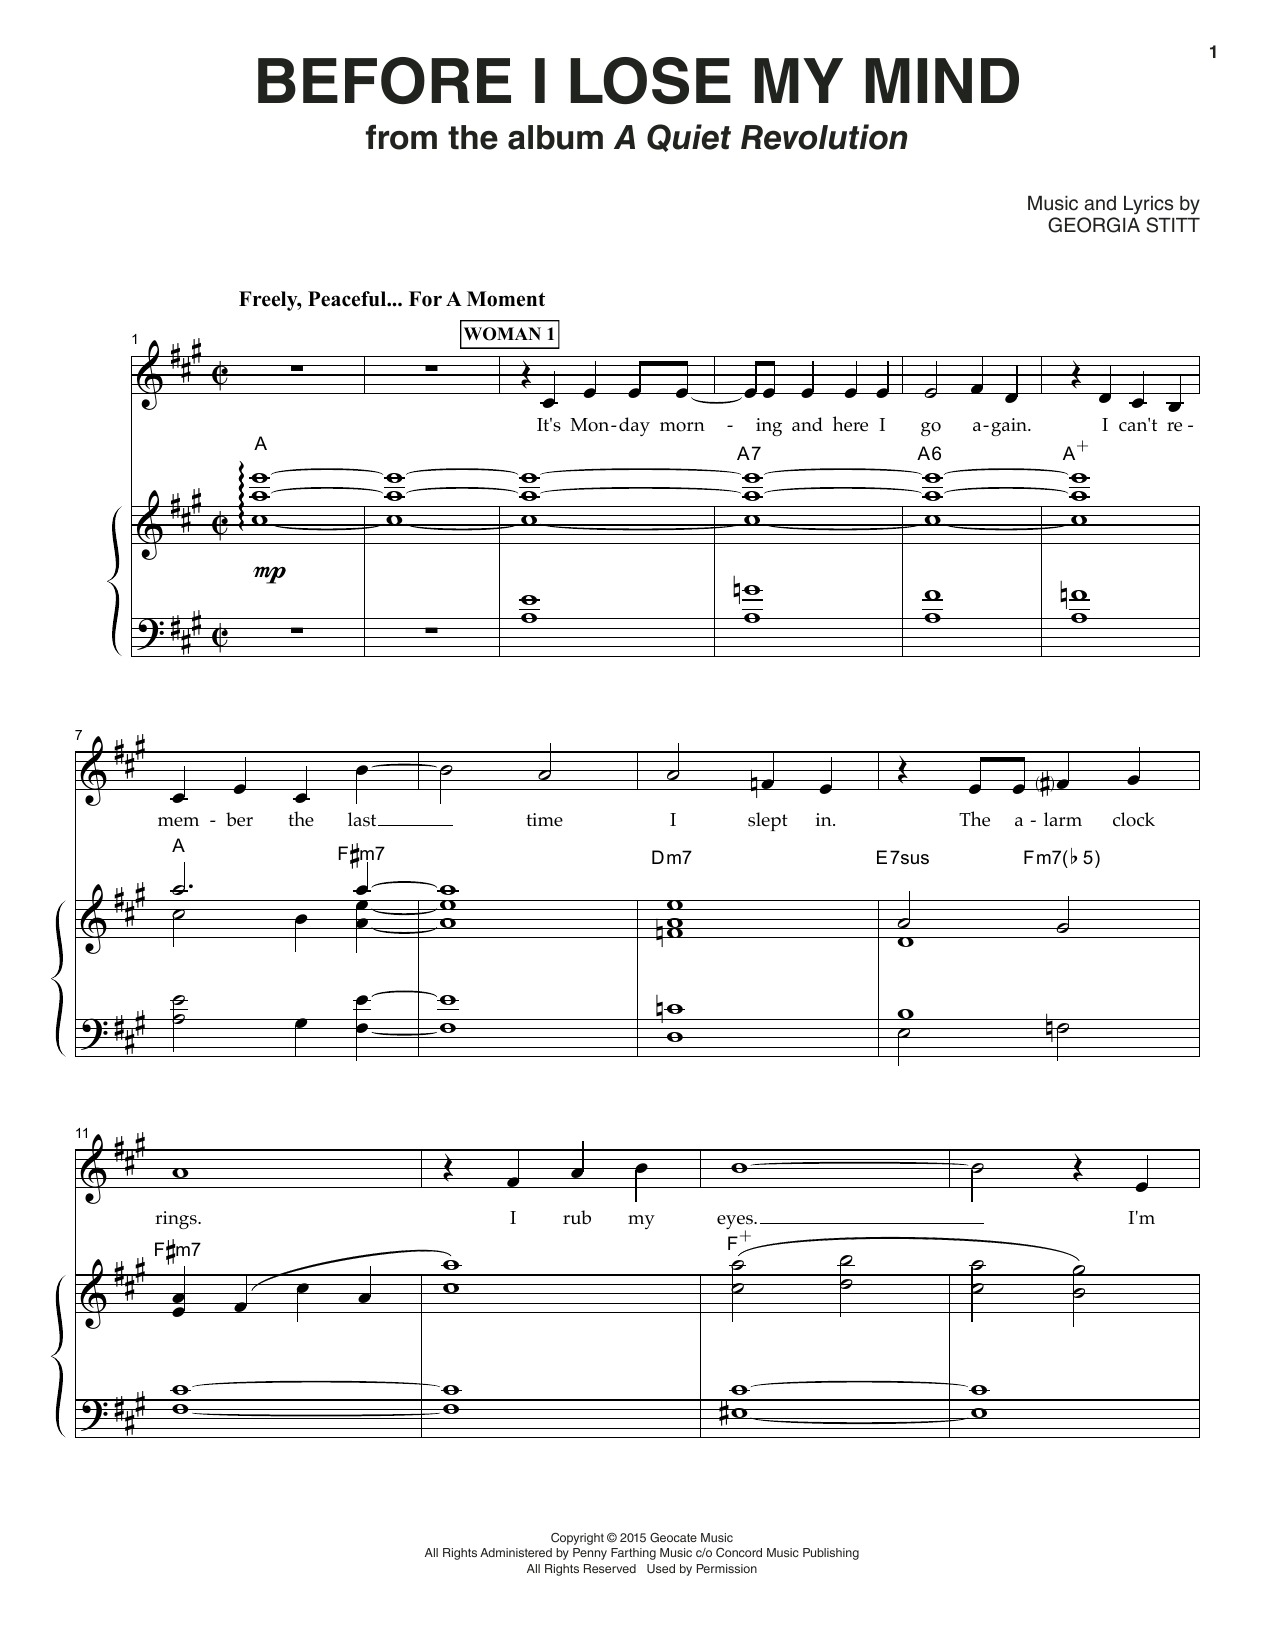 Georgia Stitt Before I Lose My Mind sheet music notes and chords. Download Printable PDF.